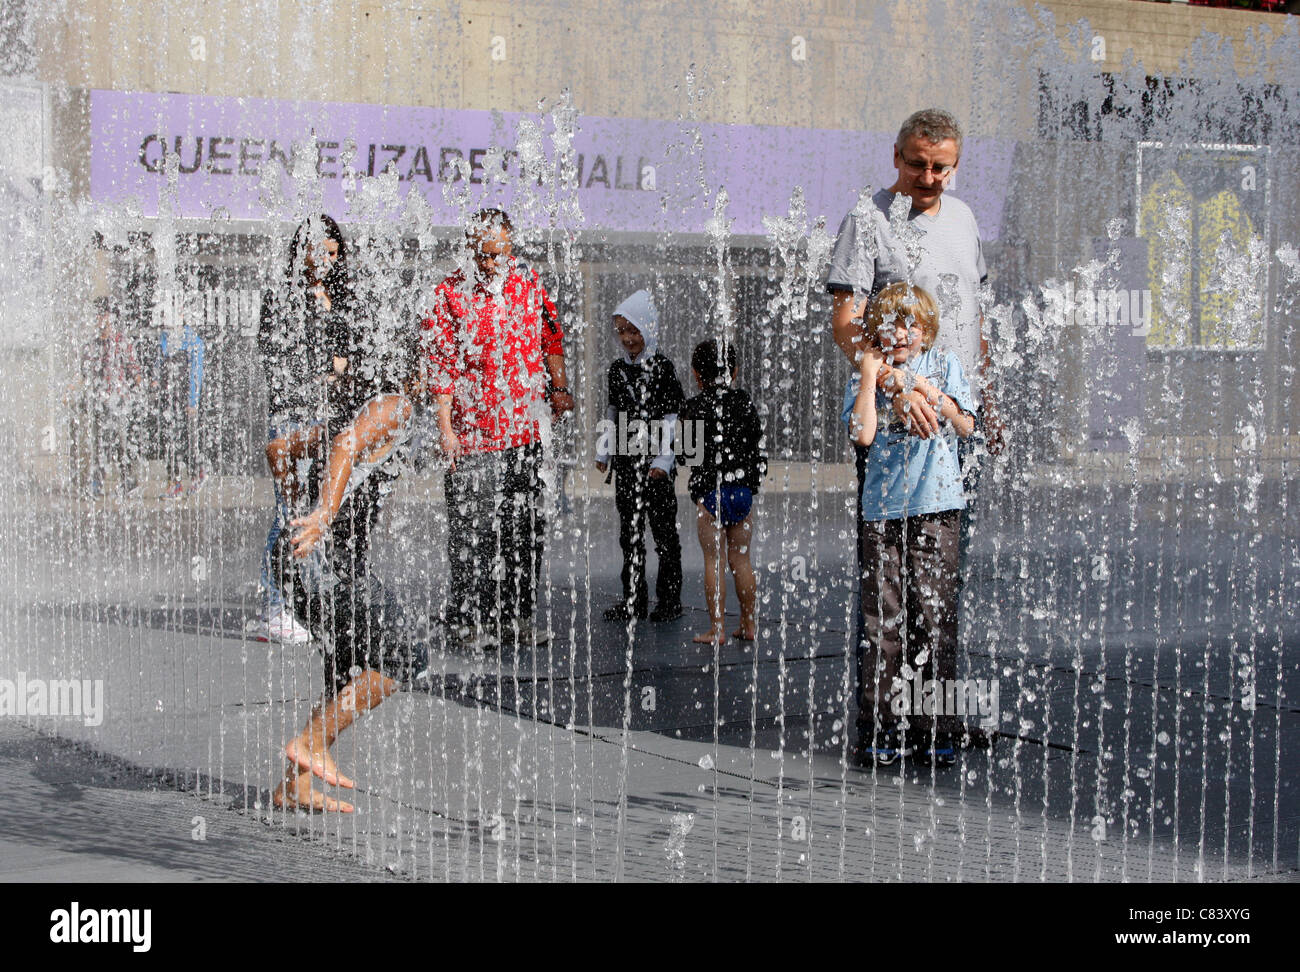 Playing in the Appearing Rooms fountains outside the Queen Elizabeth Hall on London's South Bank Stock Photo